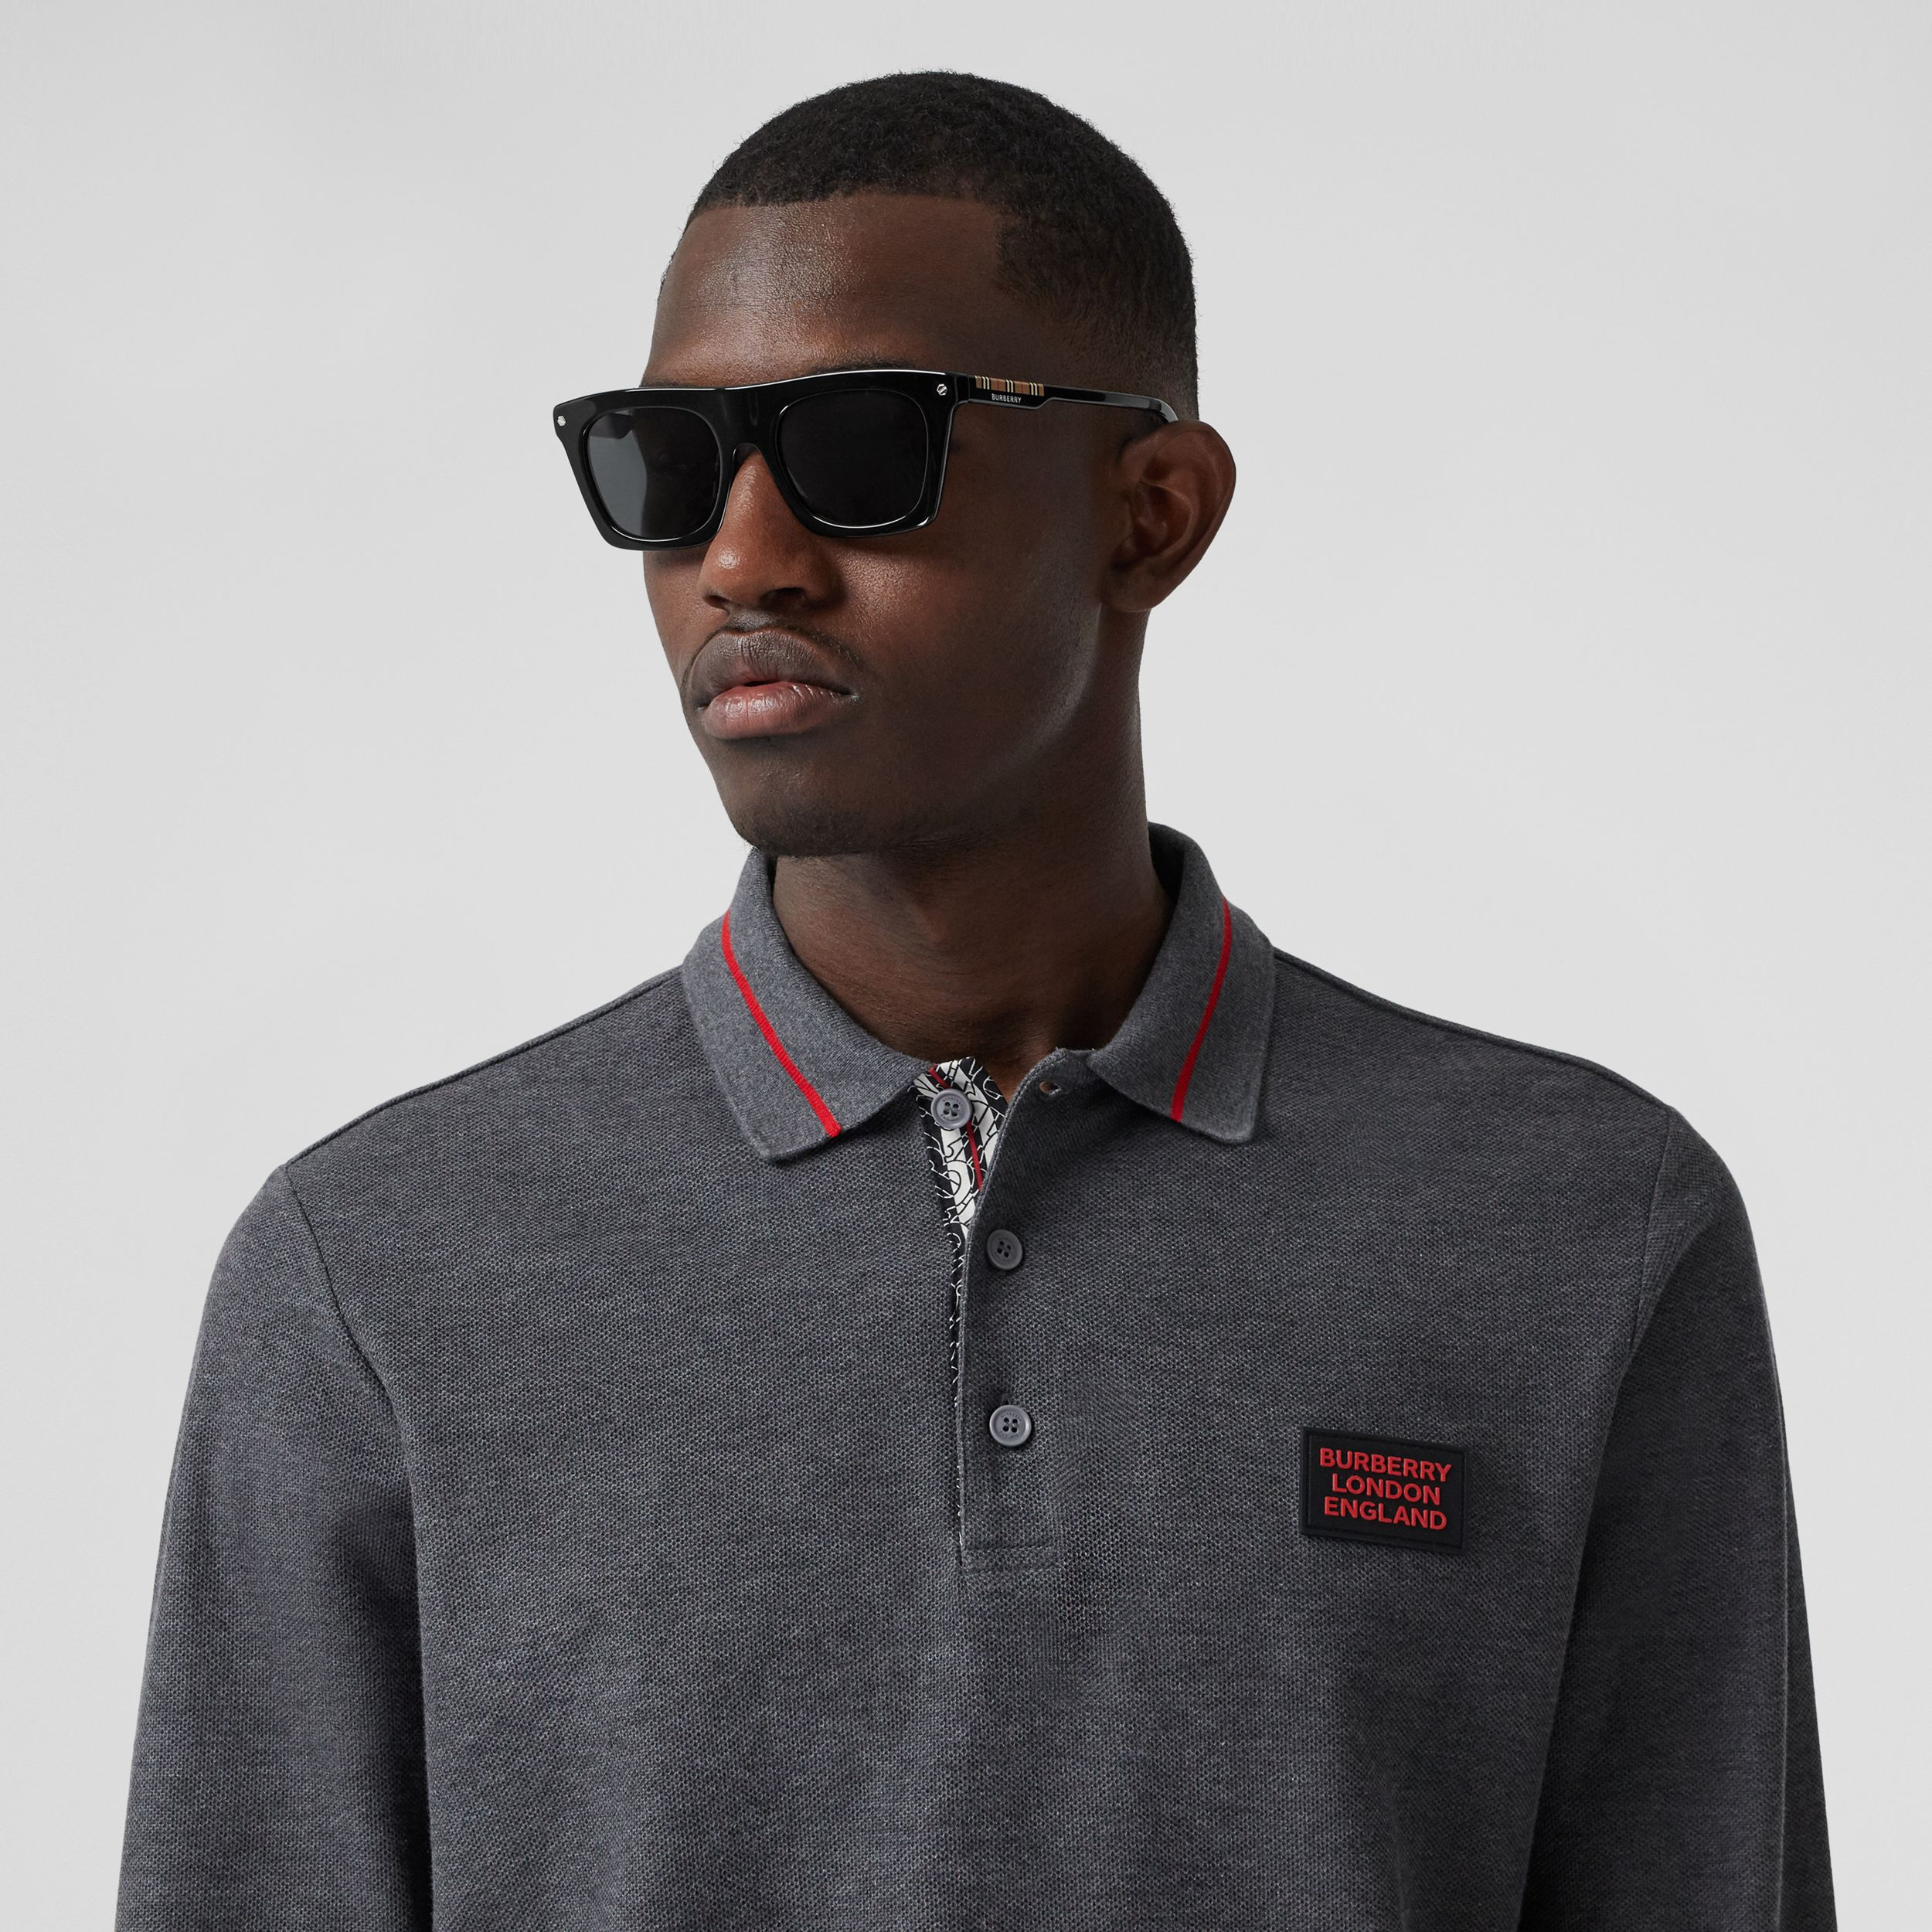 Long-sleeve Logo Appliqué Cotton Polo Shirt in Mid Grey Melange - Men | Burberry Canada - 2